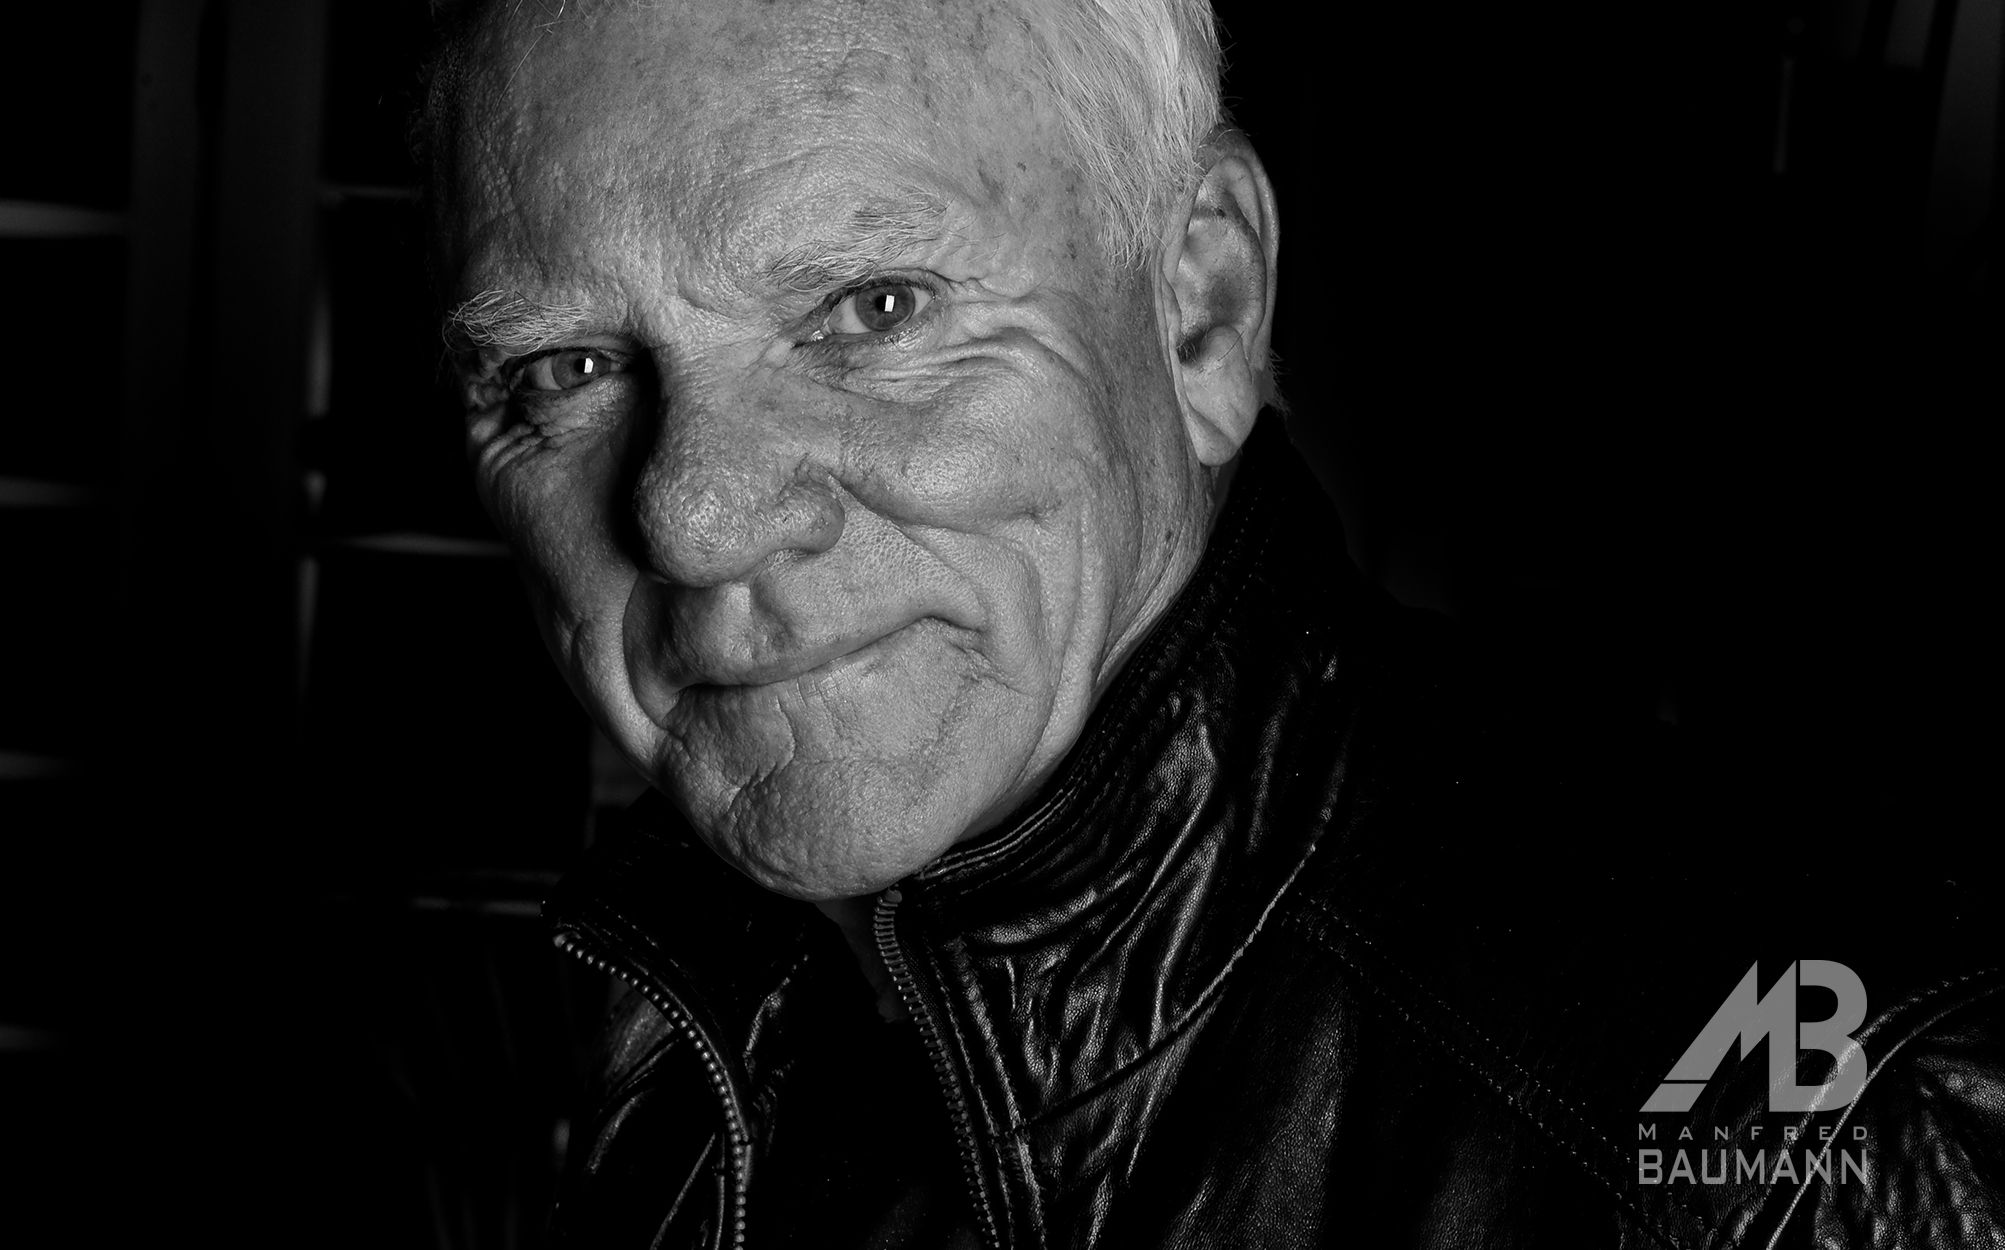 Malcolm mcdowell american actor photographed in his 1920s farmhouse in ojai on february 02